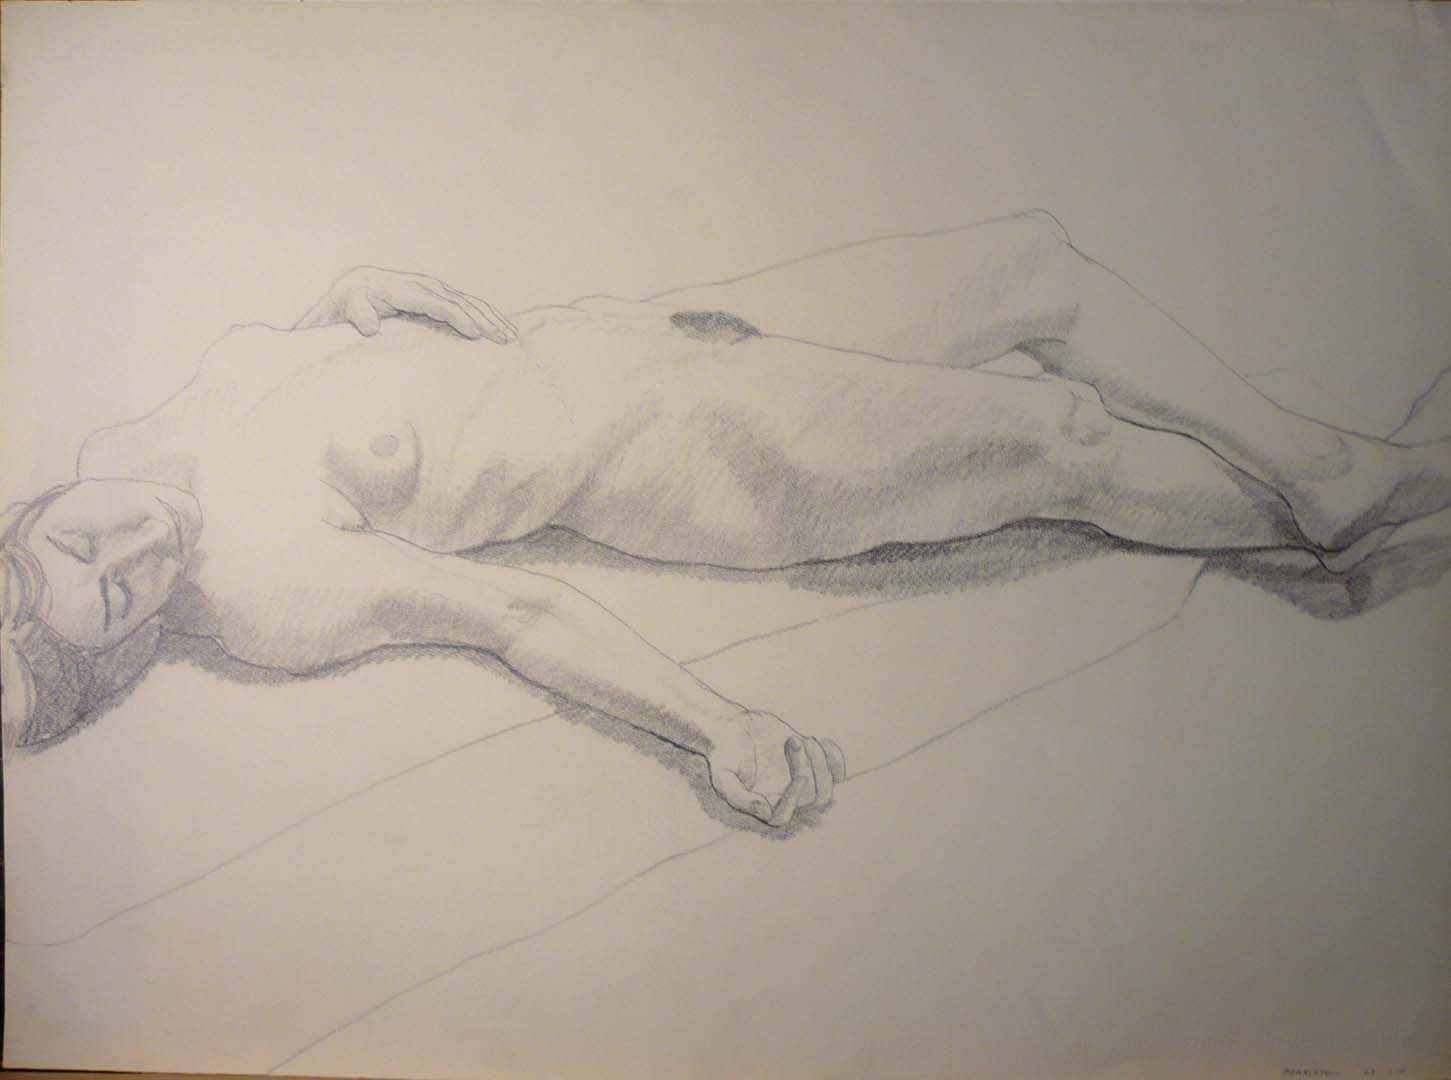 1968 Outstretched Female Model Pencil 22 x 29.875